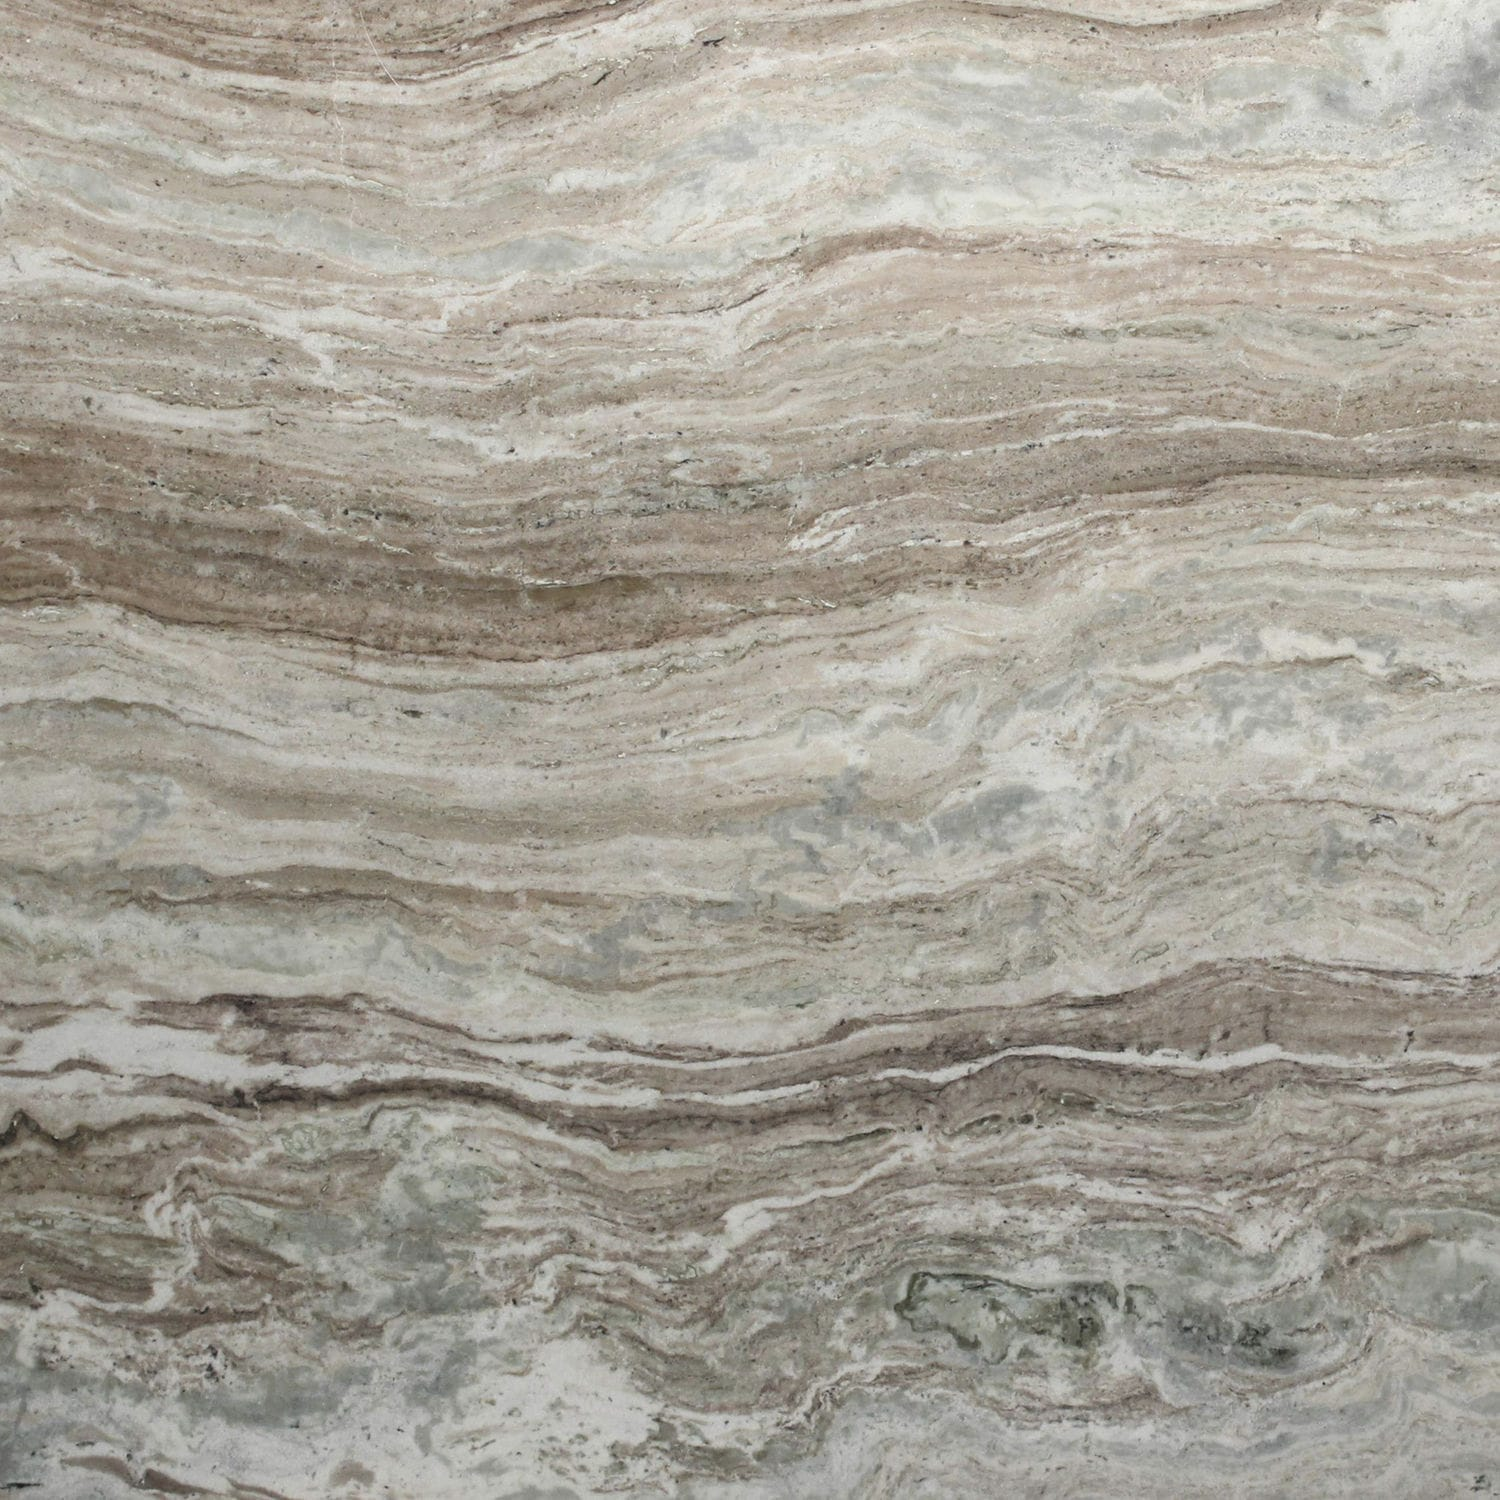 white marble countertops texture. Marble Countertop / Kitchen - FANTASY BROWN White Countertops Texture